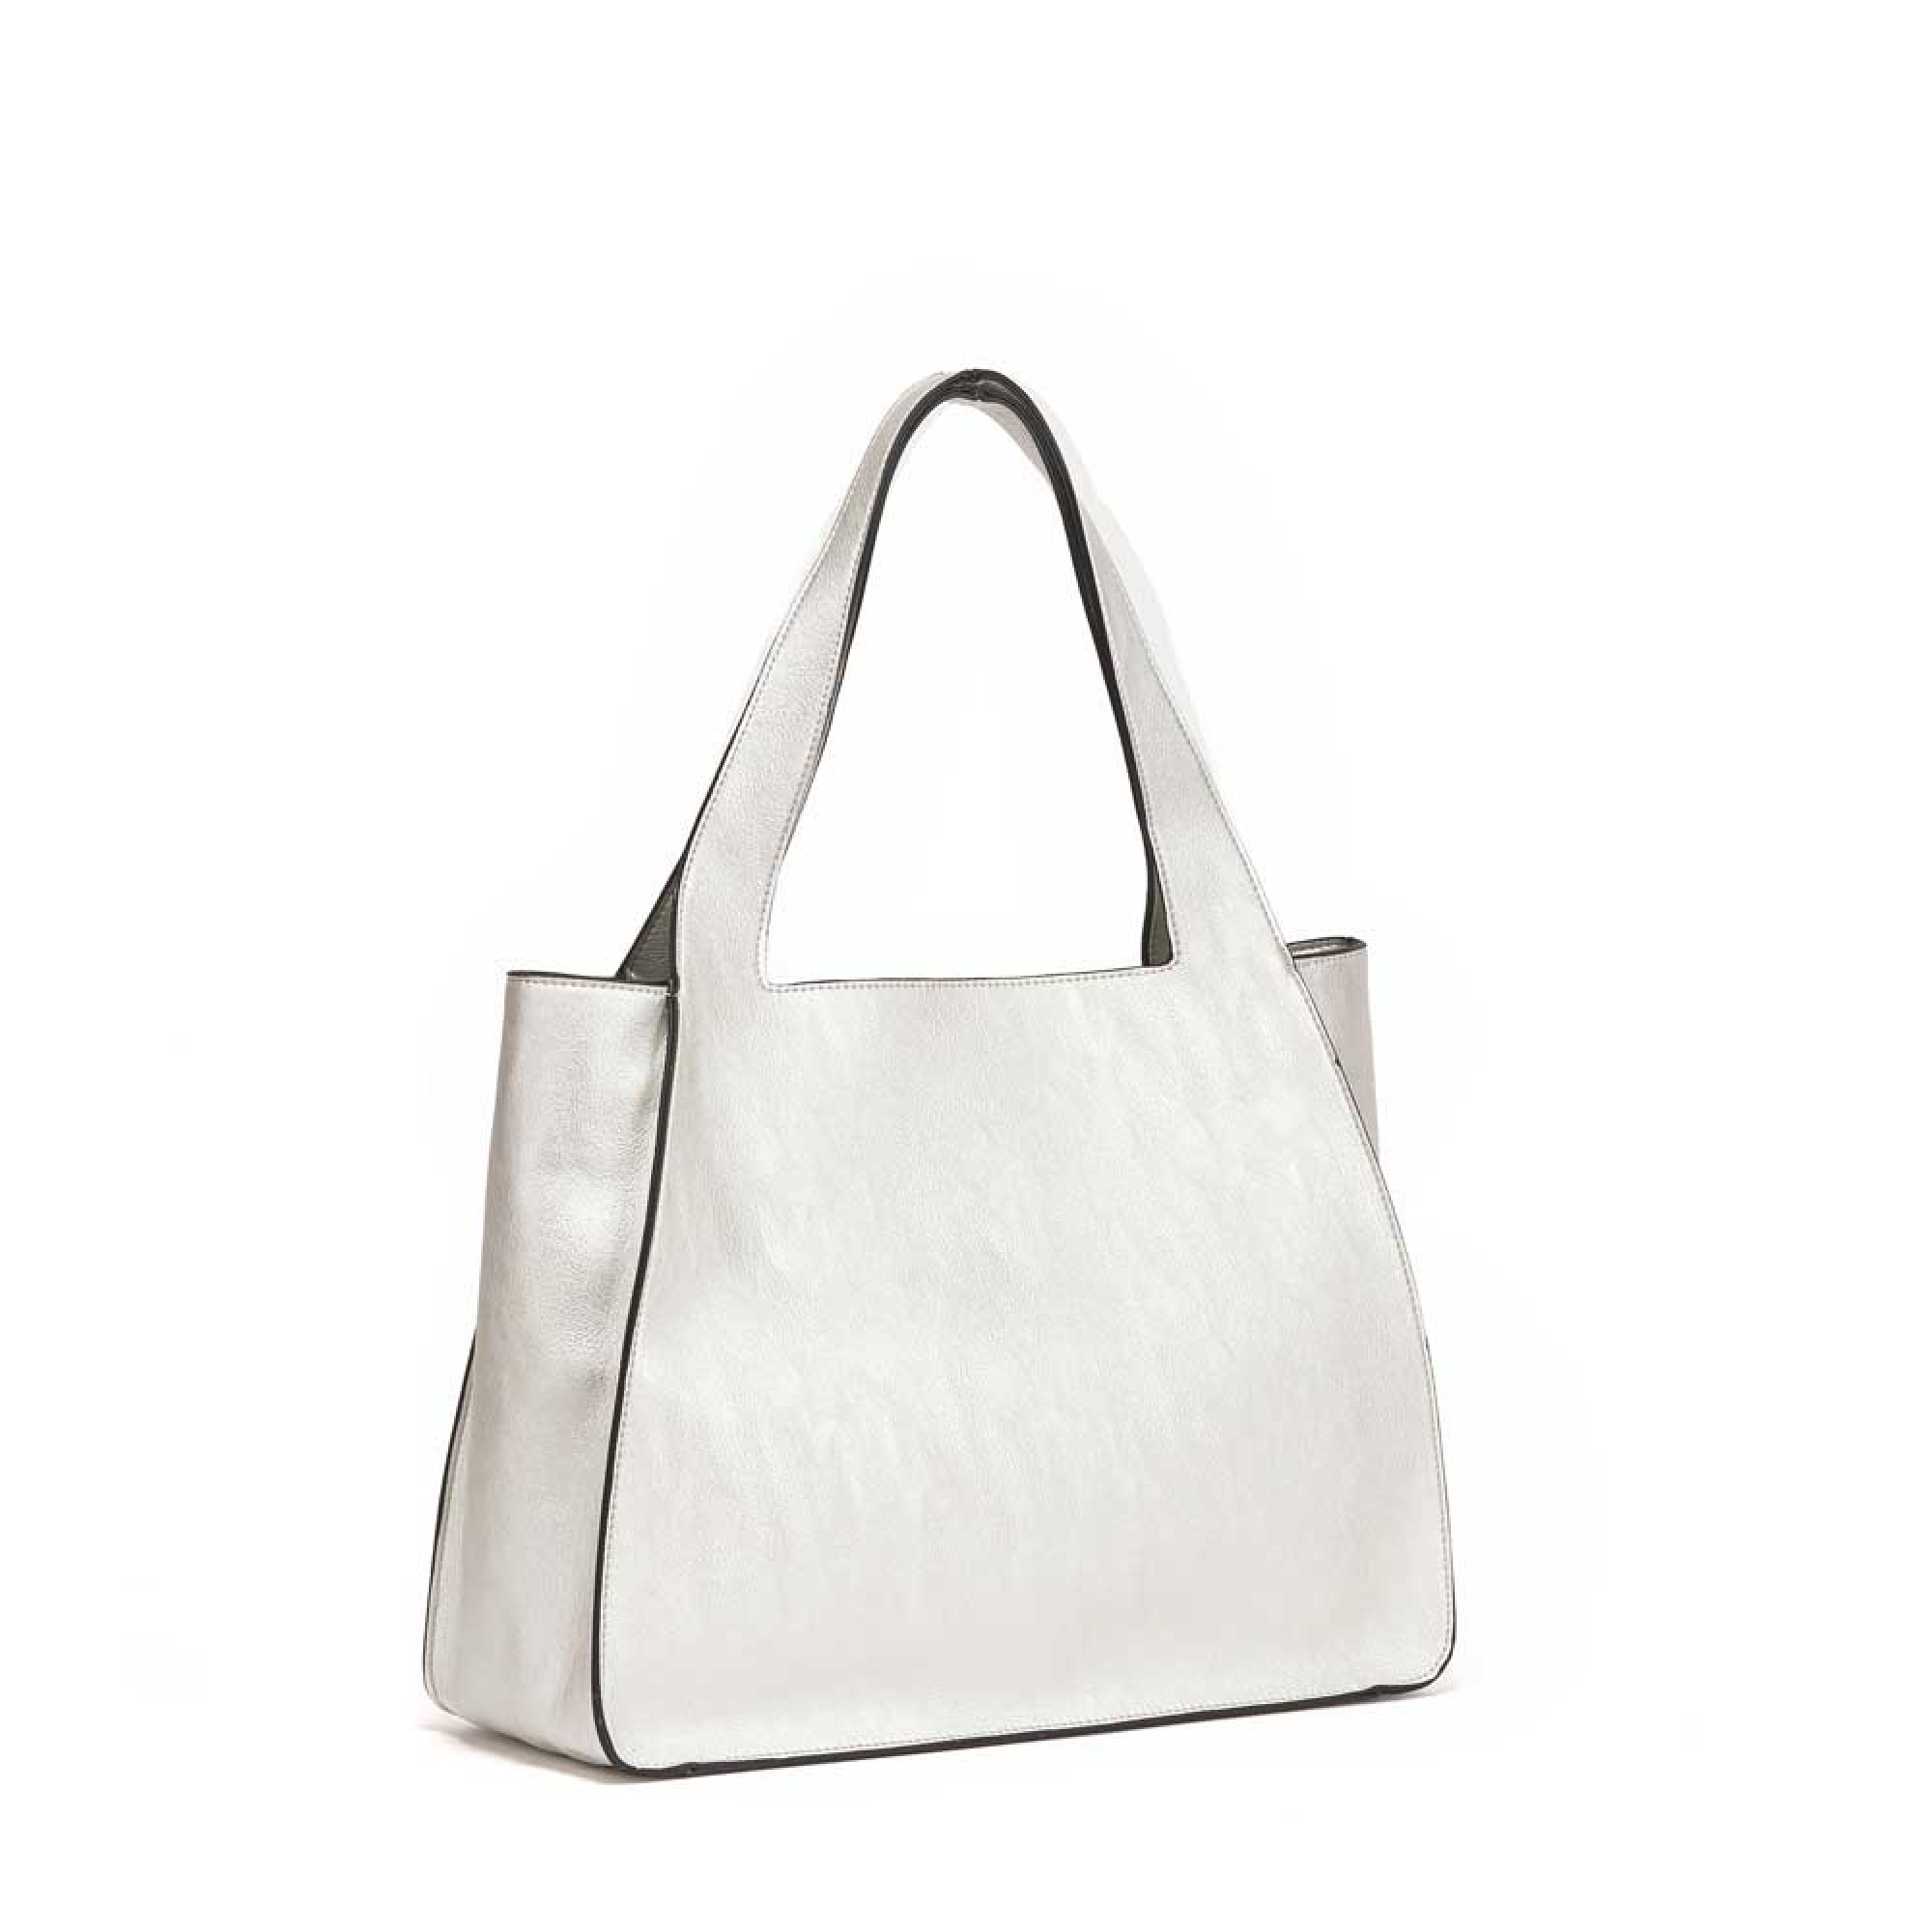 SHOPPER - GBDA1525 - GAELLE PARIS